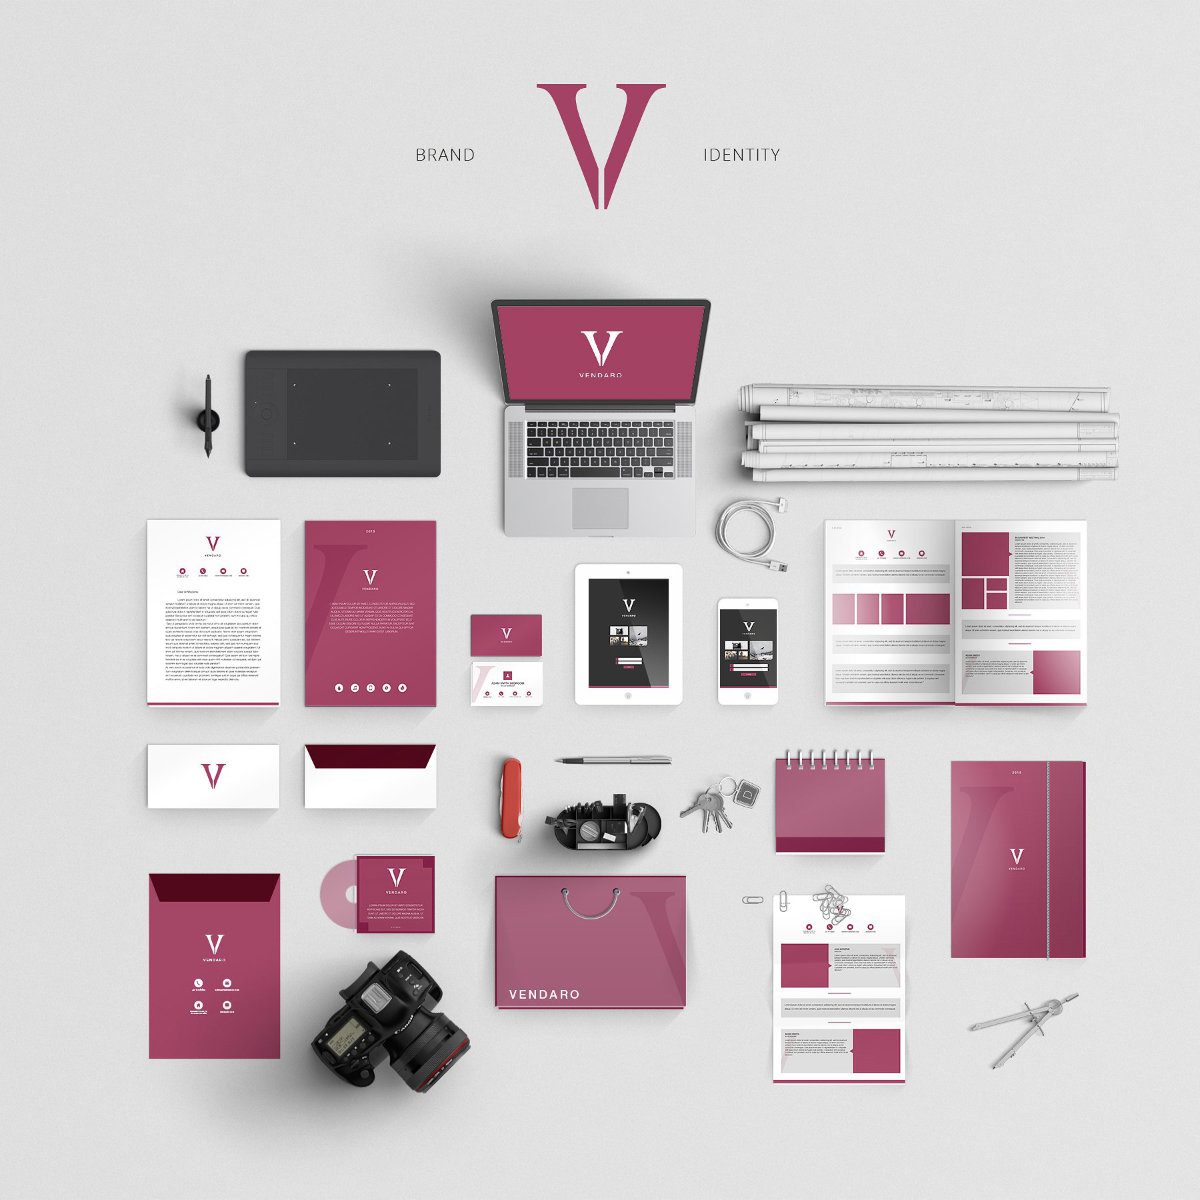 An example of a brand identity that should be used when considering how to best construct a 3d render.